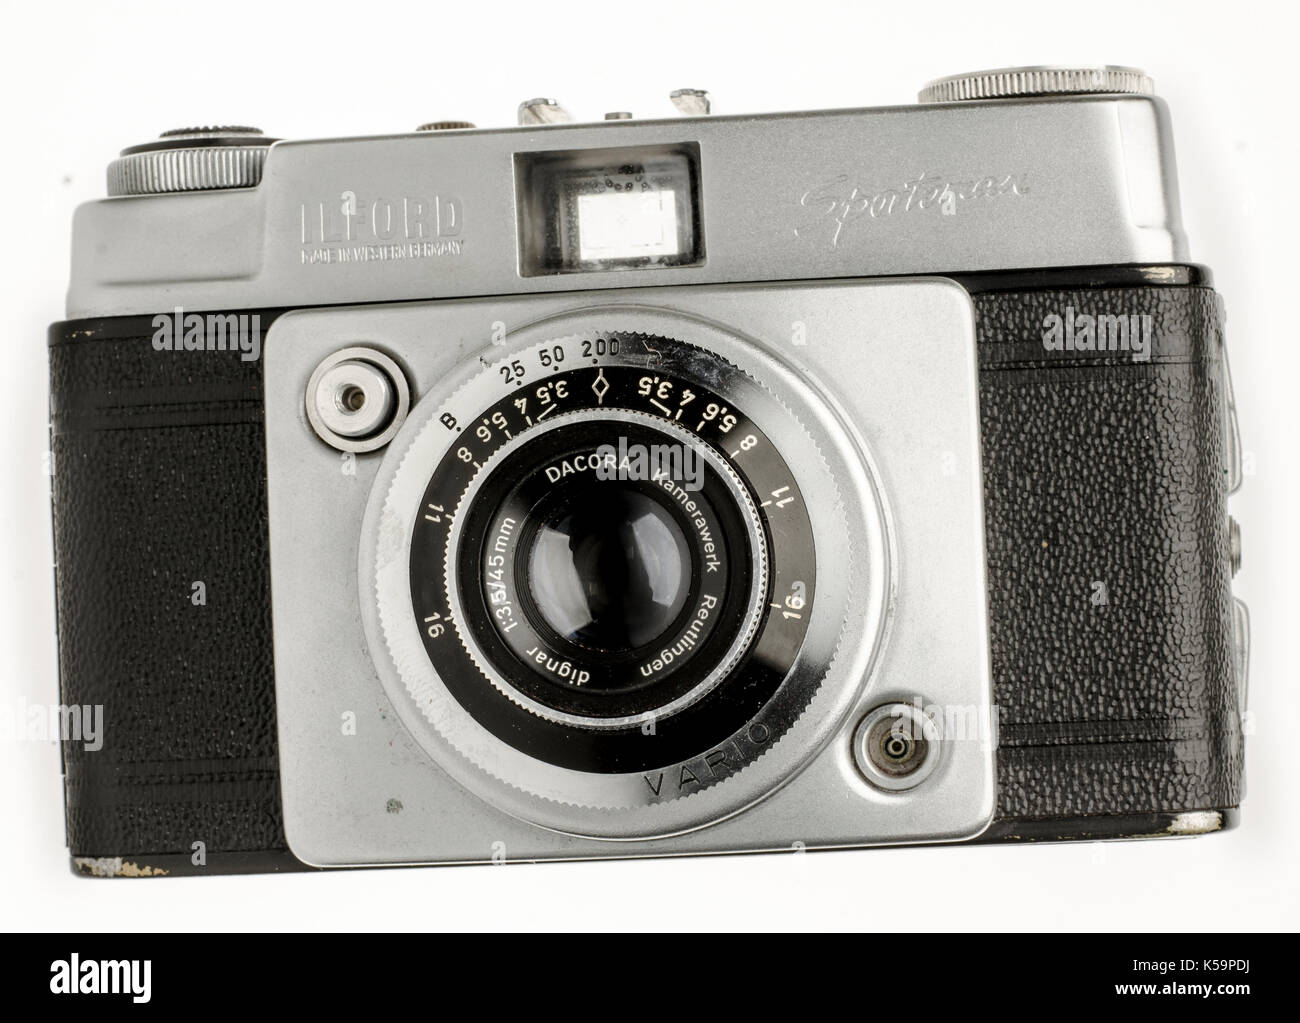 Ilford Sportsman 35mm Compact Camera - Stock Image